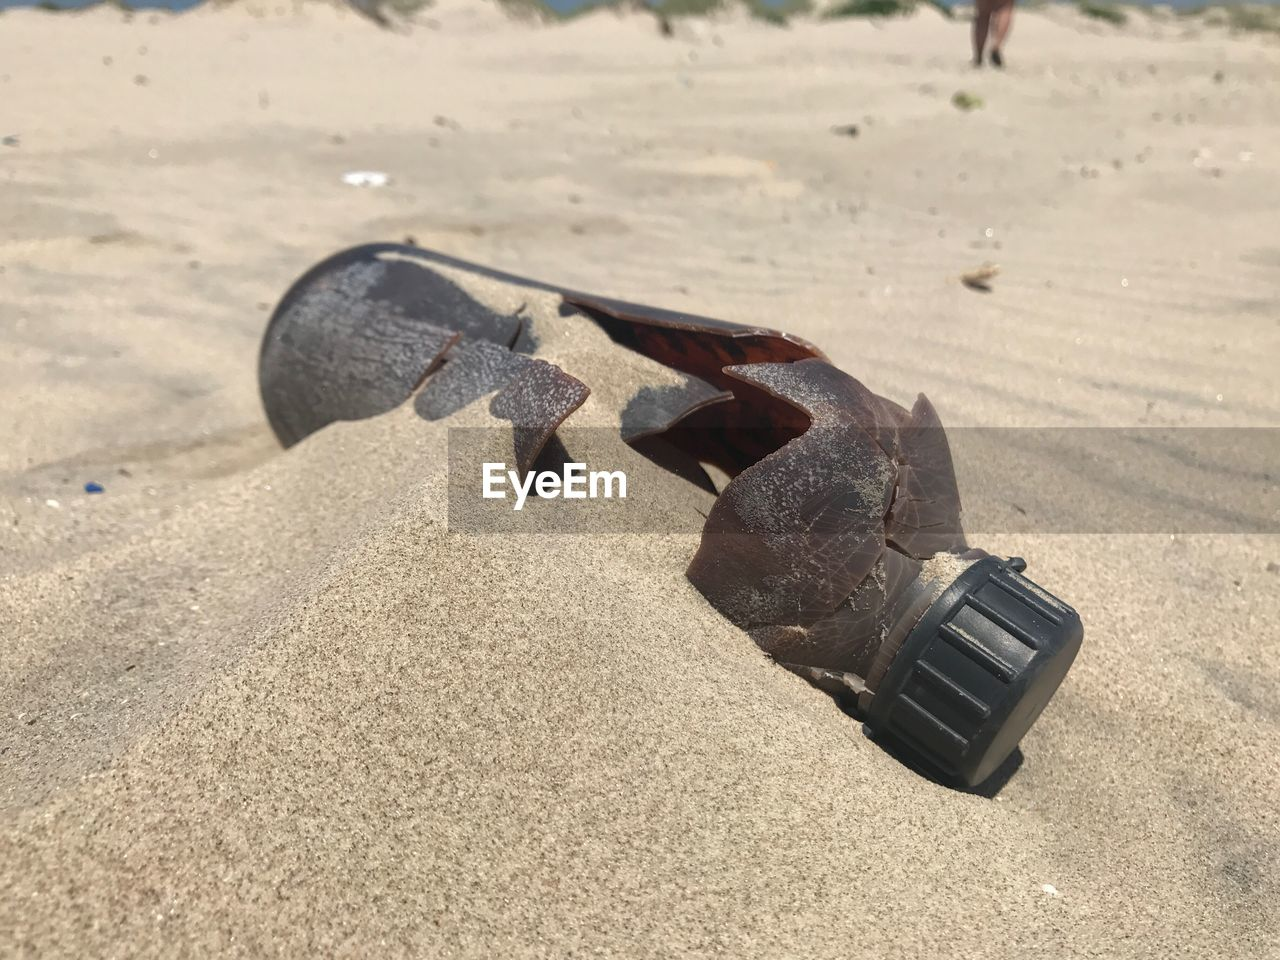 sand, land, sunlight, focus on foreground, beach, metal, shadow, close-up, nature, day, high angle view, sport, no people, still life, sports equipment, outdoors, single object, abandoned, equipment, security